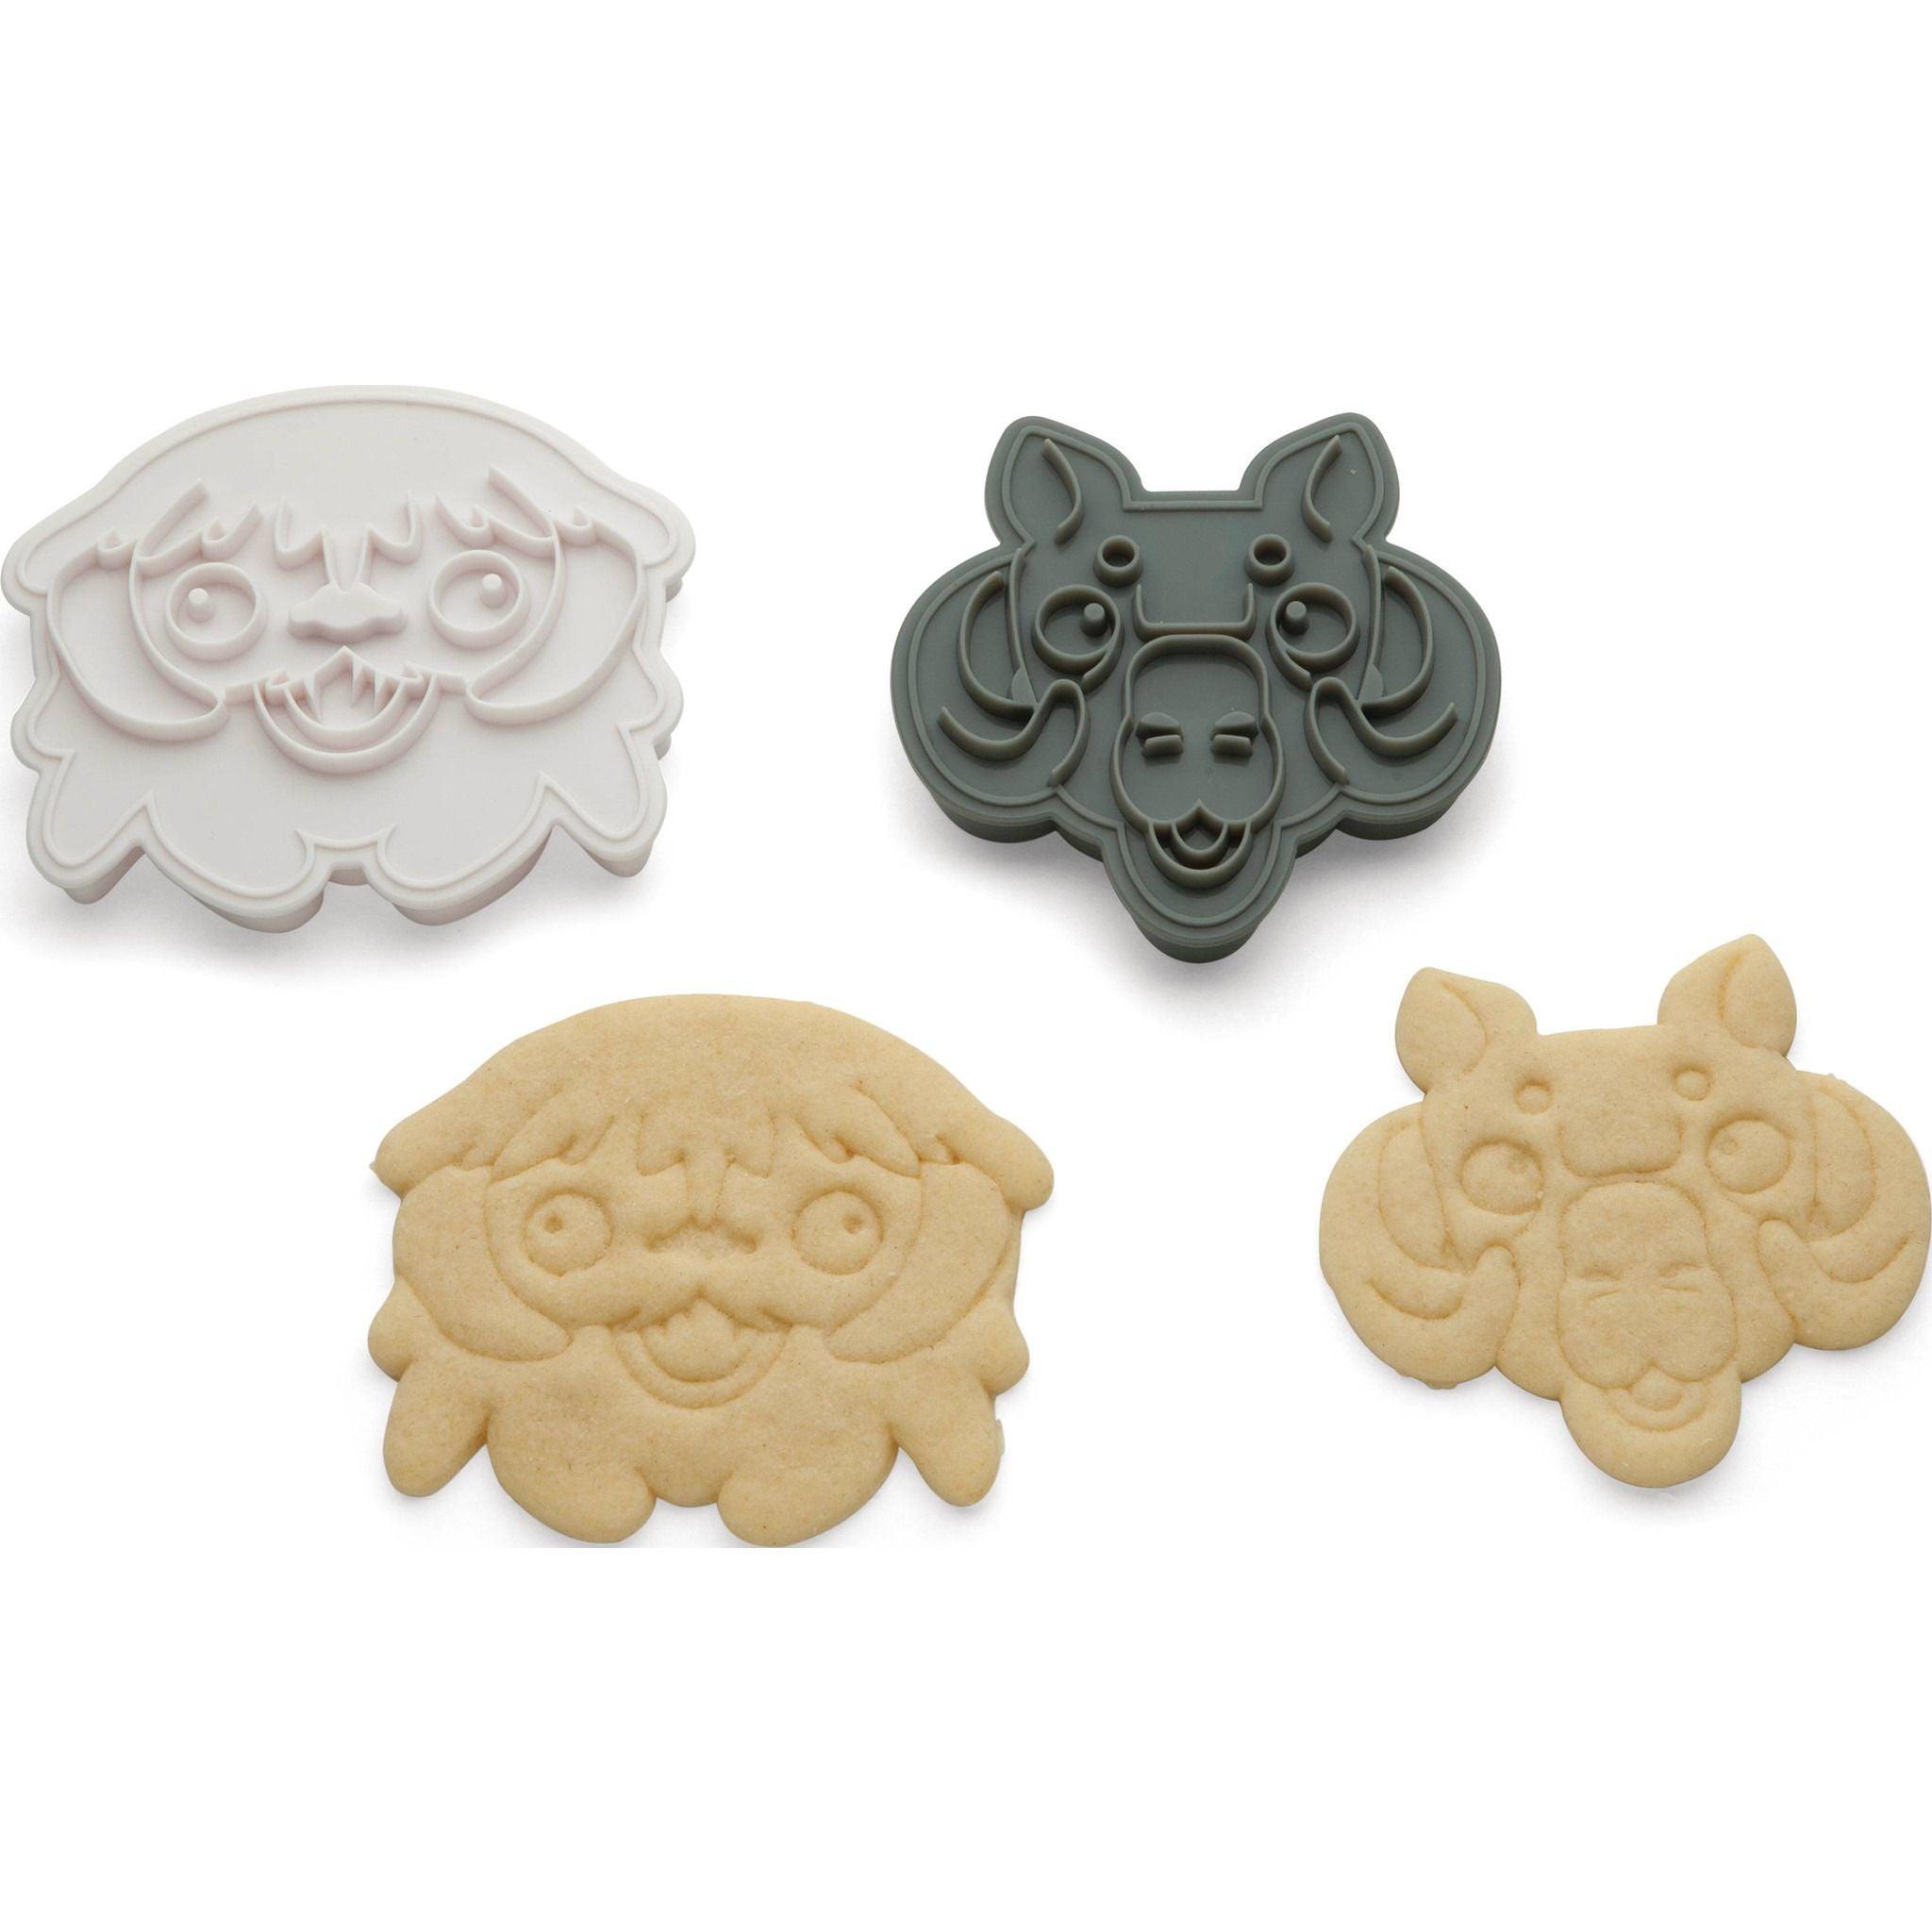 Star Wars Cookie Cutters Uncanny!